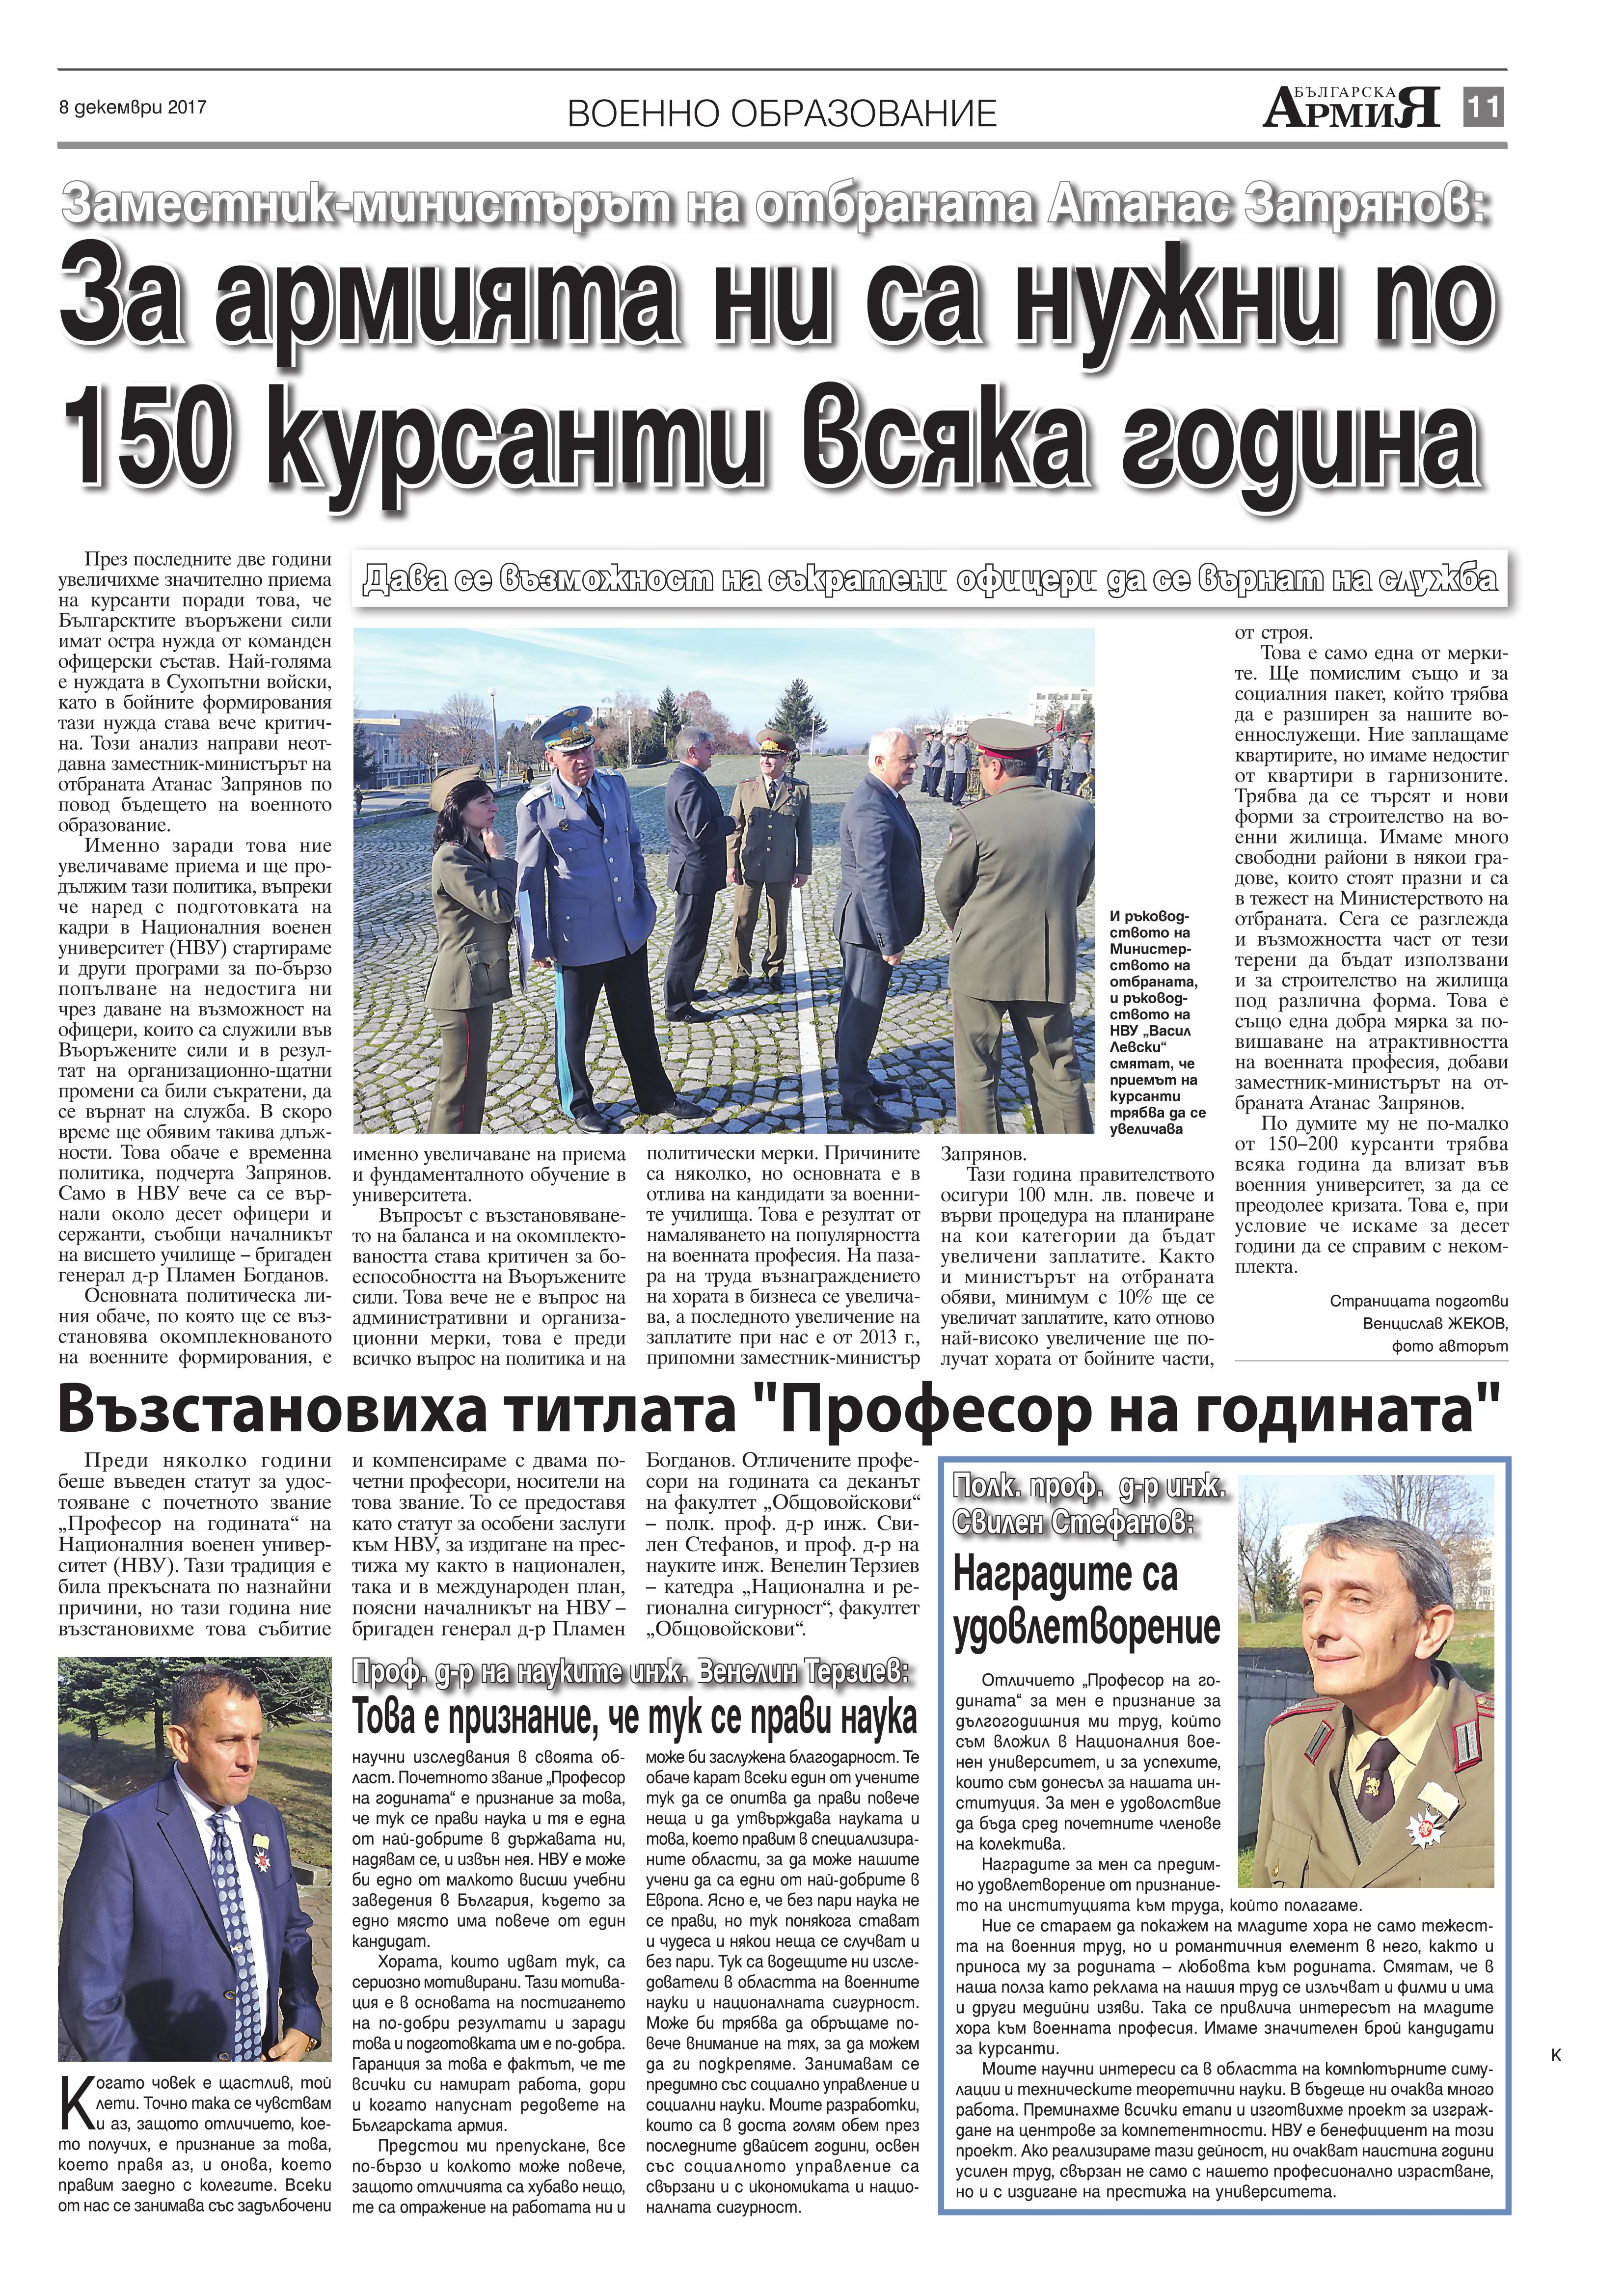 https://armymedia.bg/wp-content/uploads/2015/06/11.page1_-35.jpg